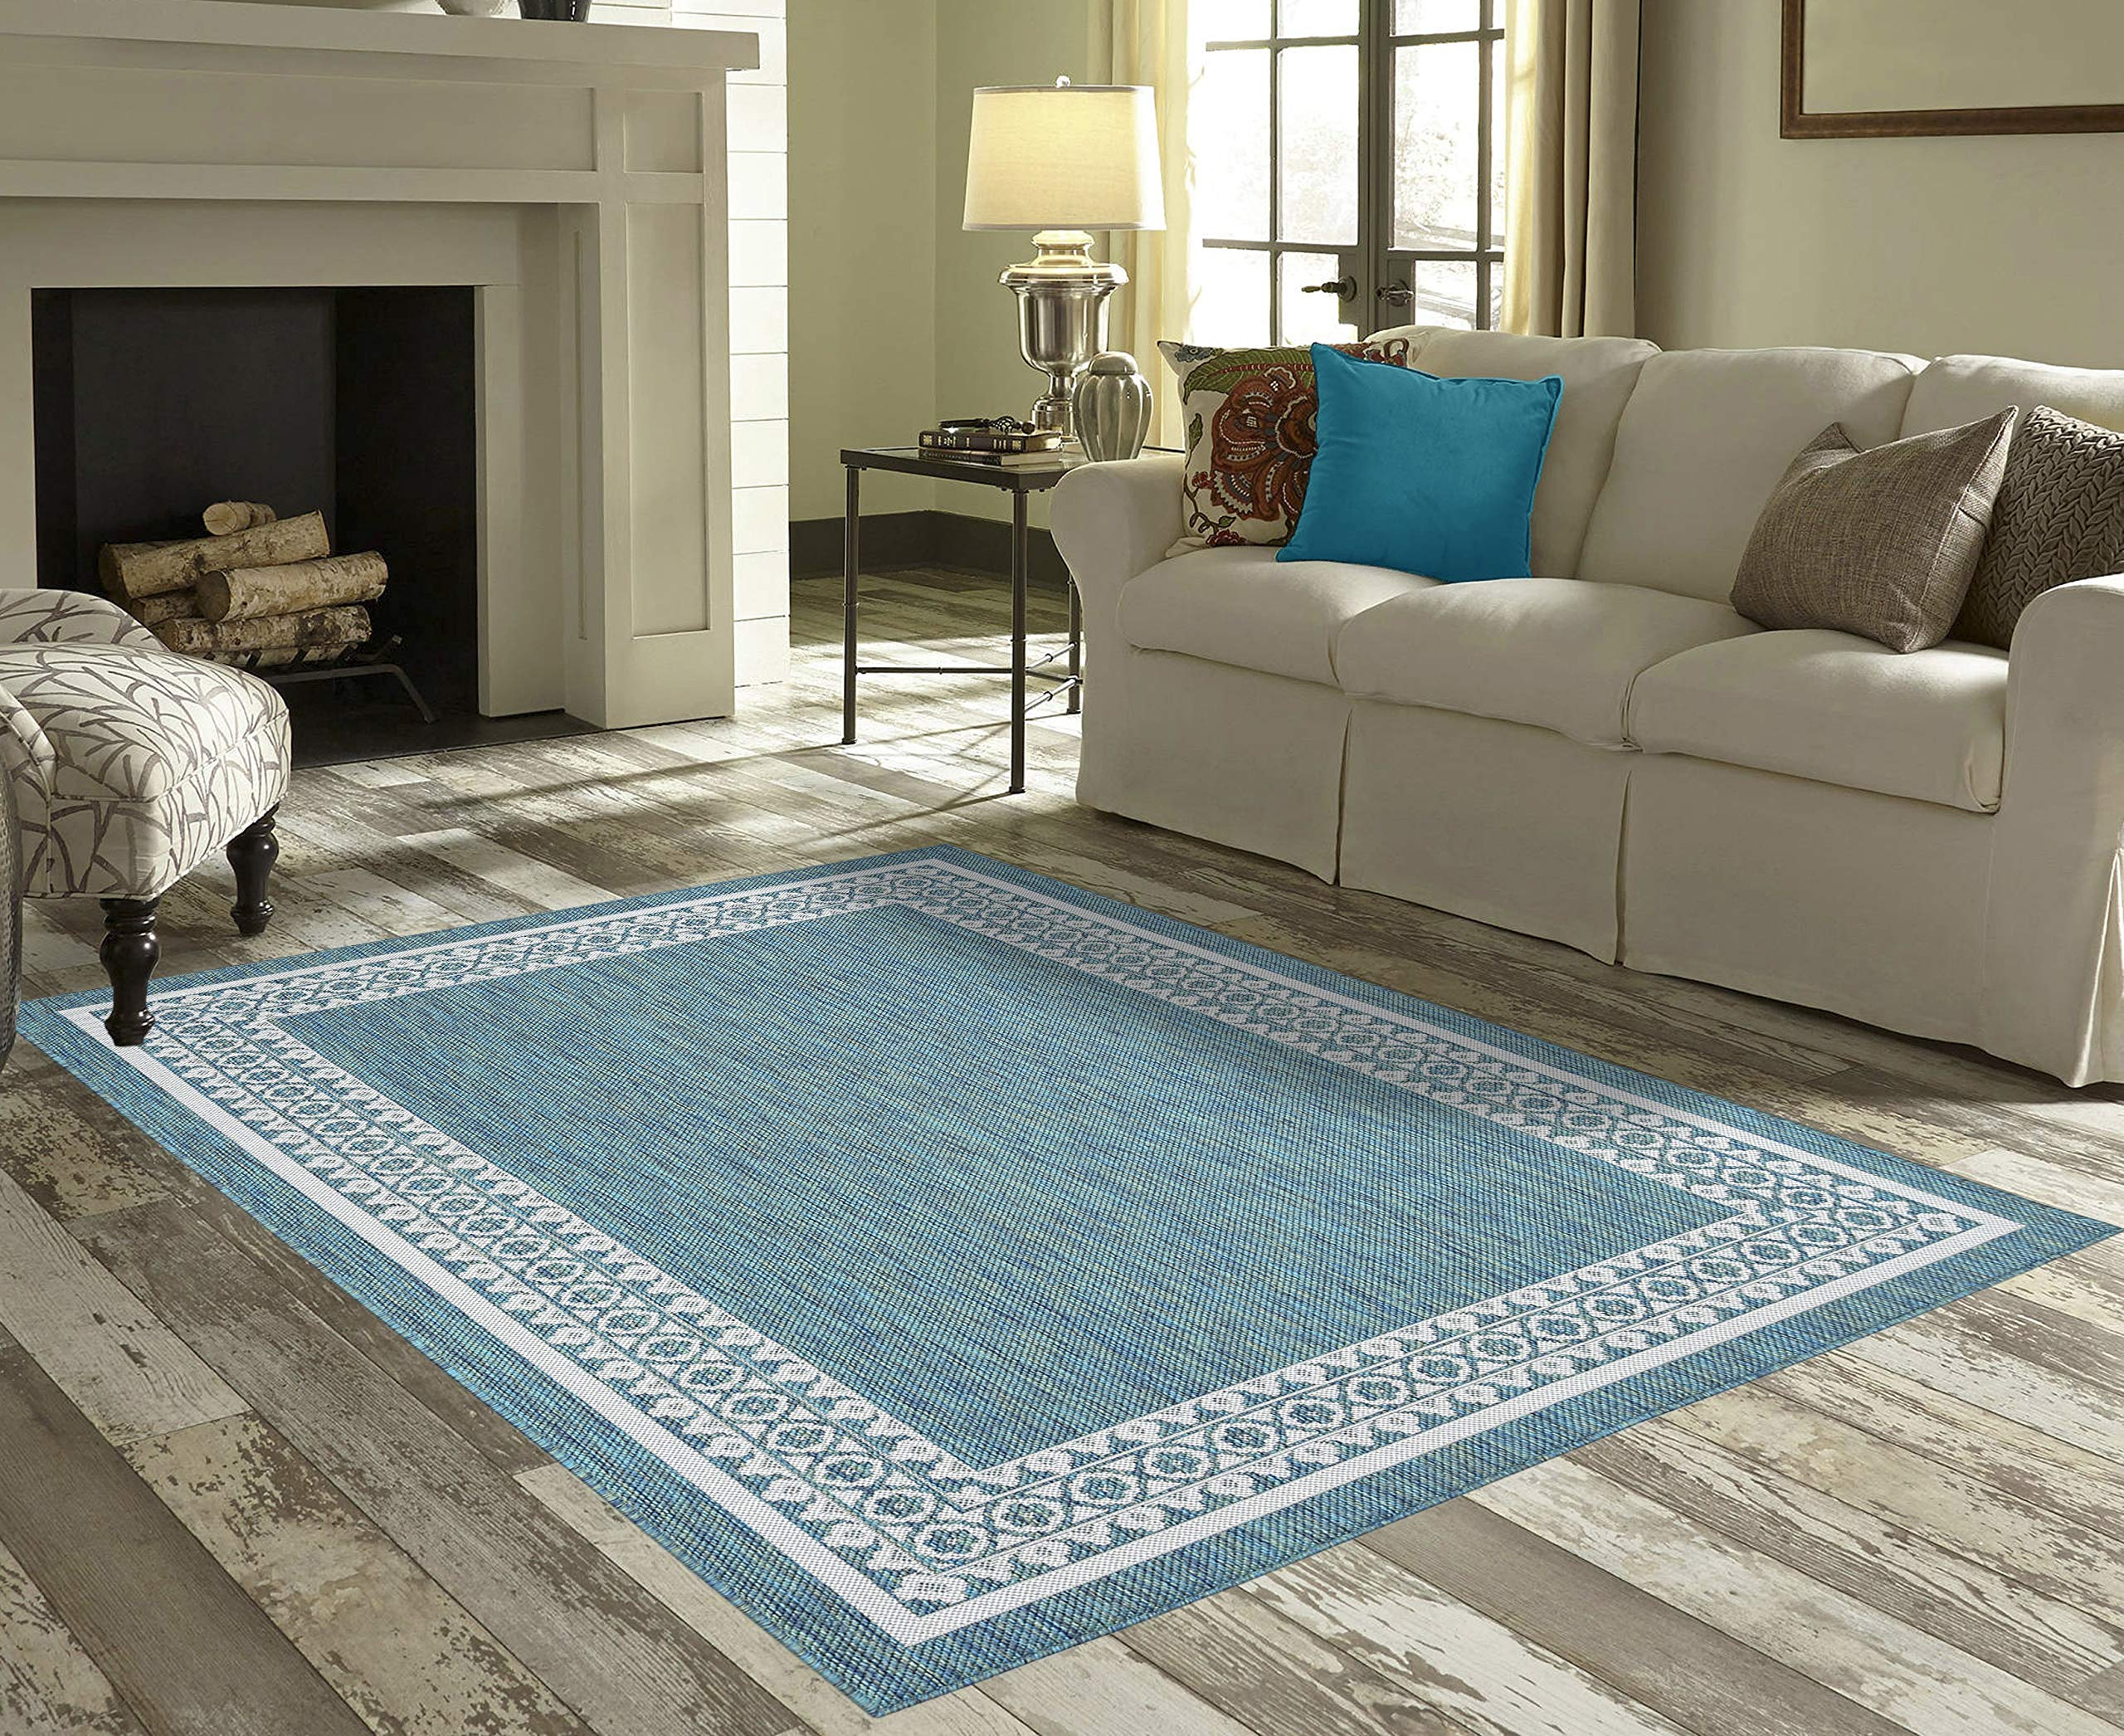 Priyate Florida Collection - All Weather Indoor/Outdoor Border Rug for Living Room, Bedroom, and Dining Room (5'3'' x 7'6'', Ocean) by Priyate